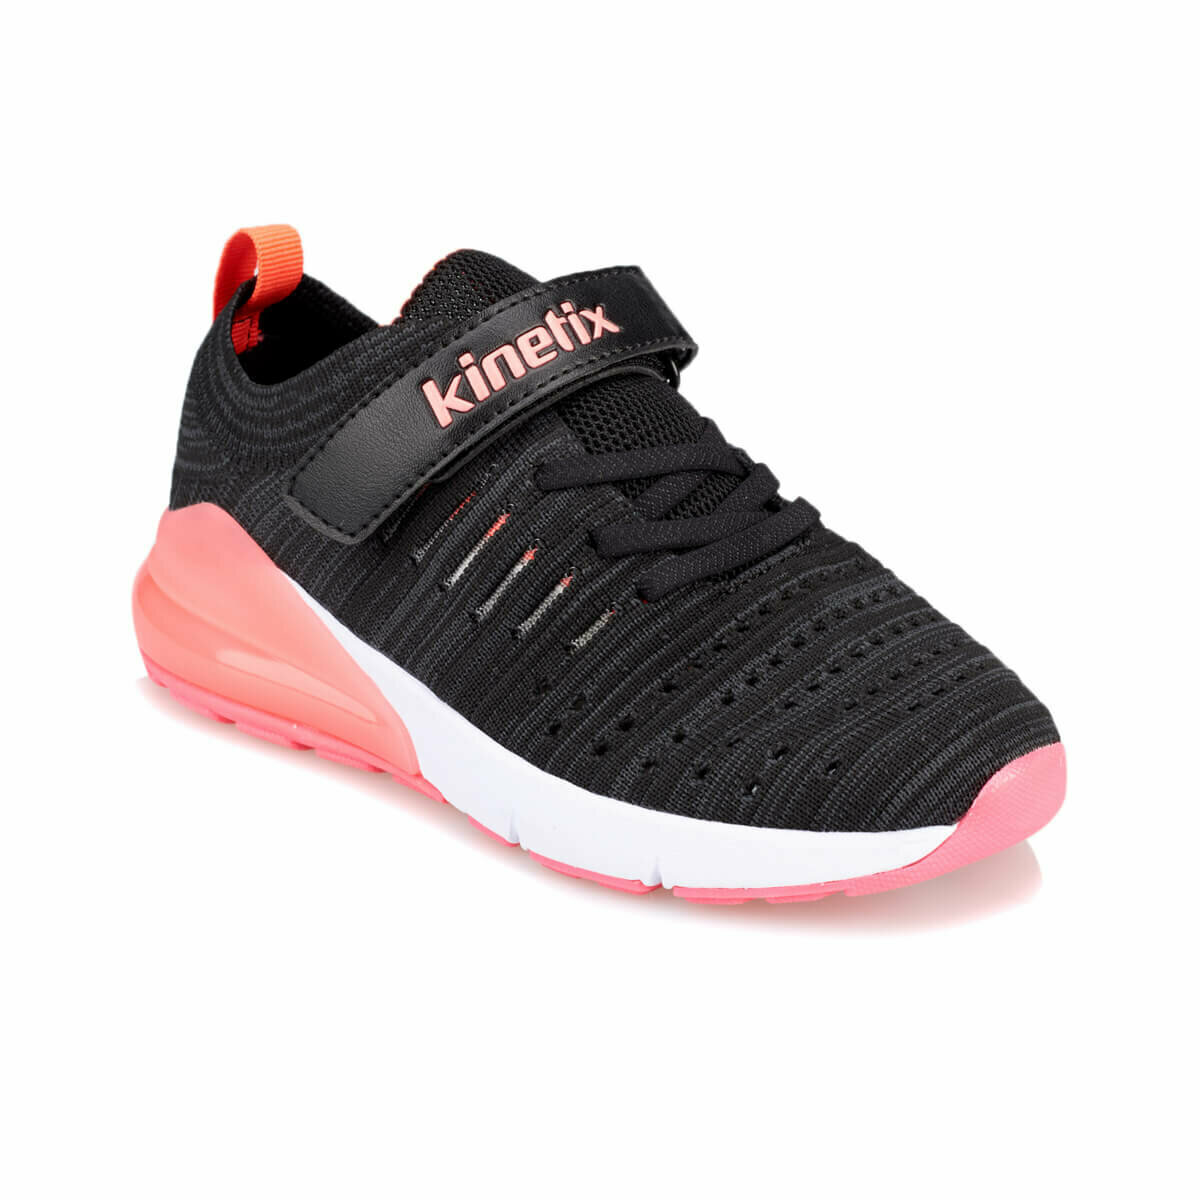 FLO IZUMI J Black Female Child Running Shoes KINETIX